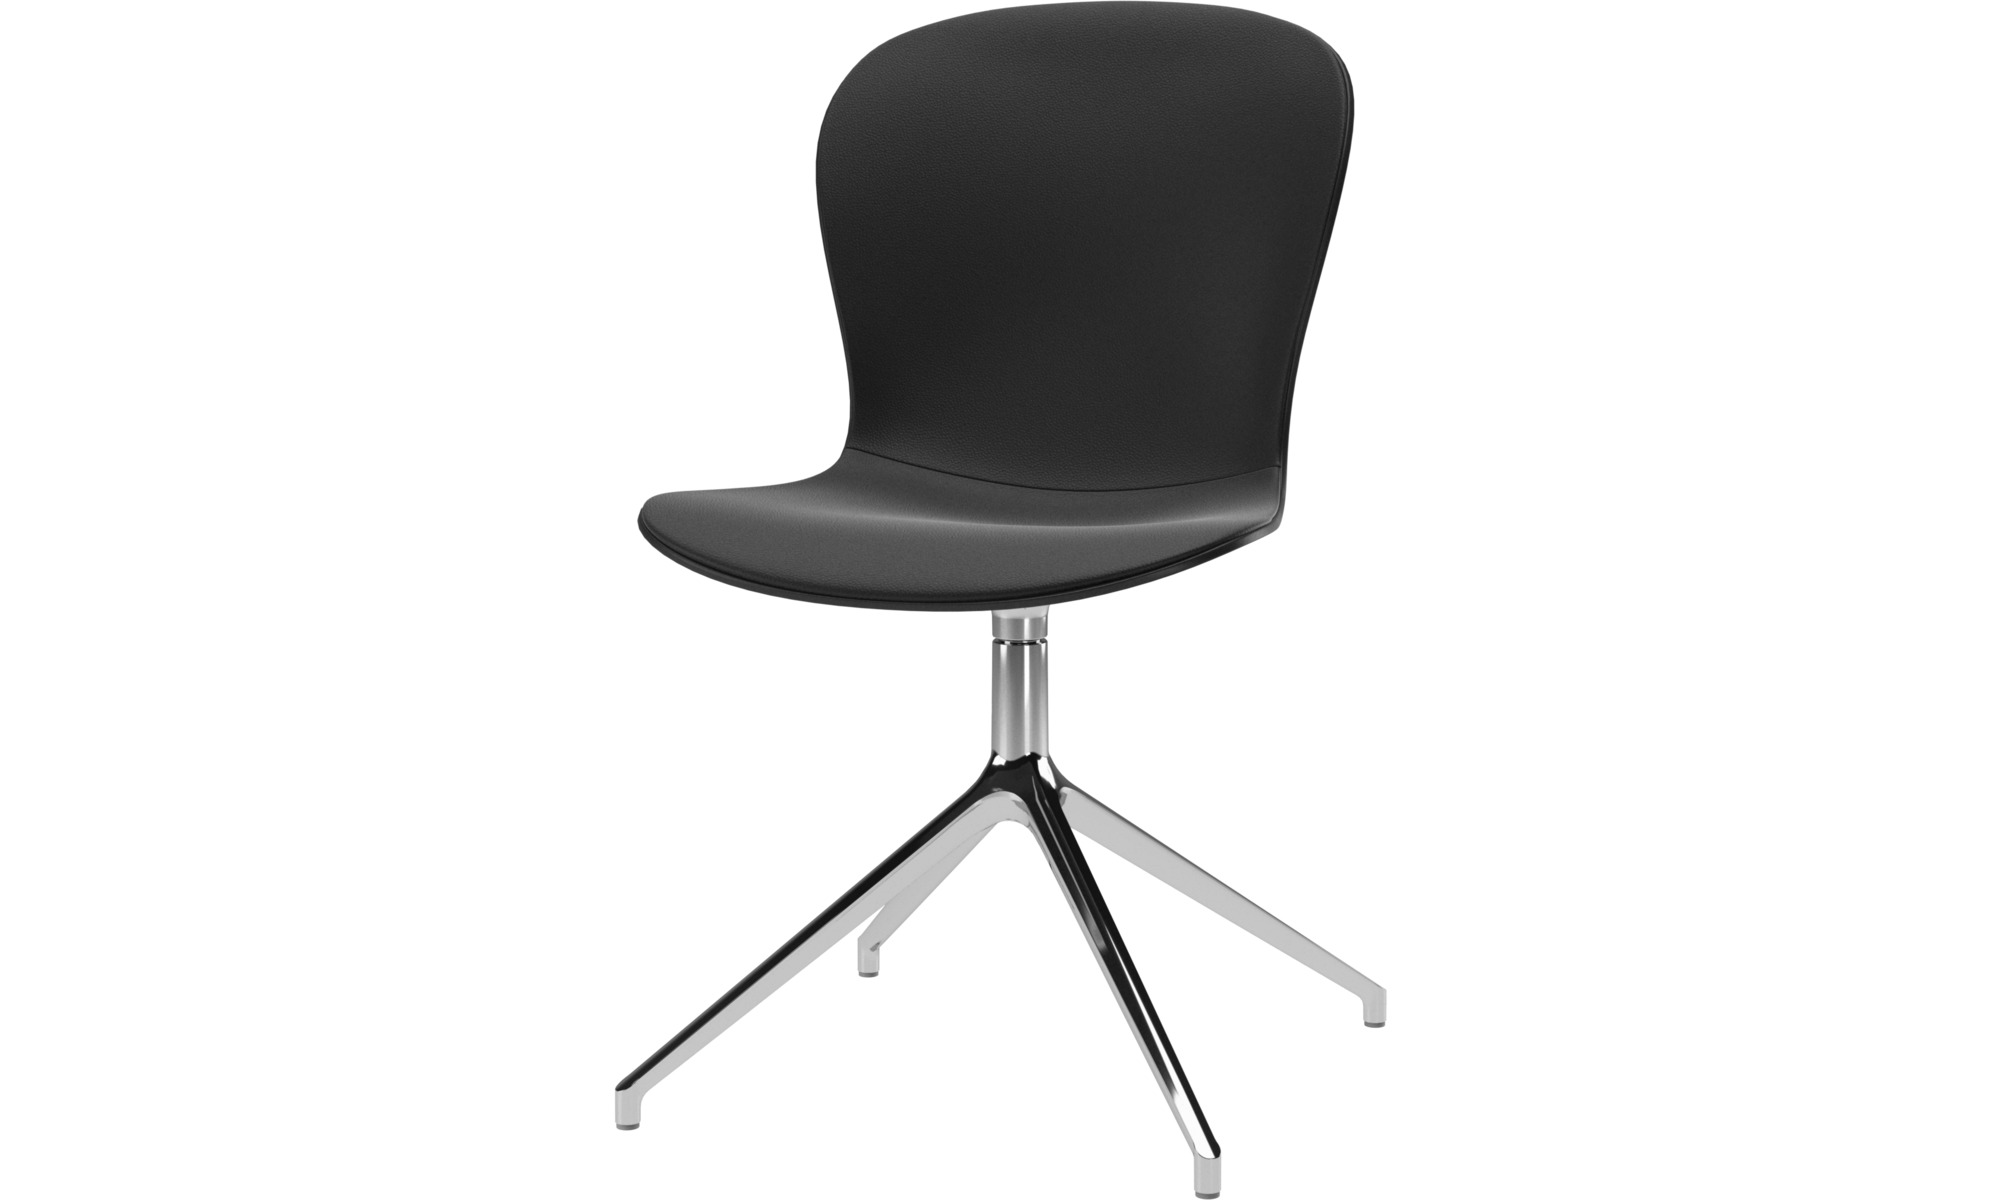 Home office chairs - Adelaide chair with swivel function - Black - Leather